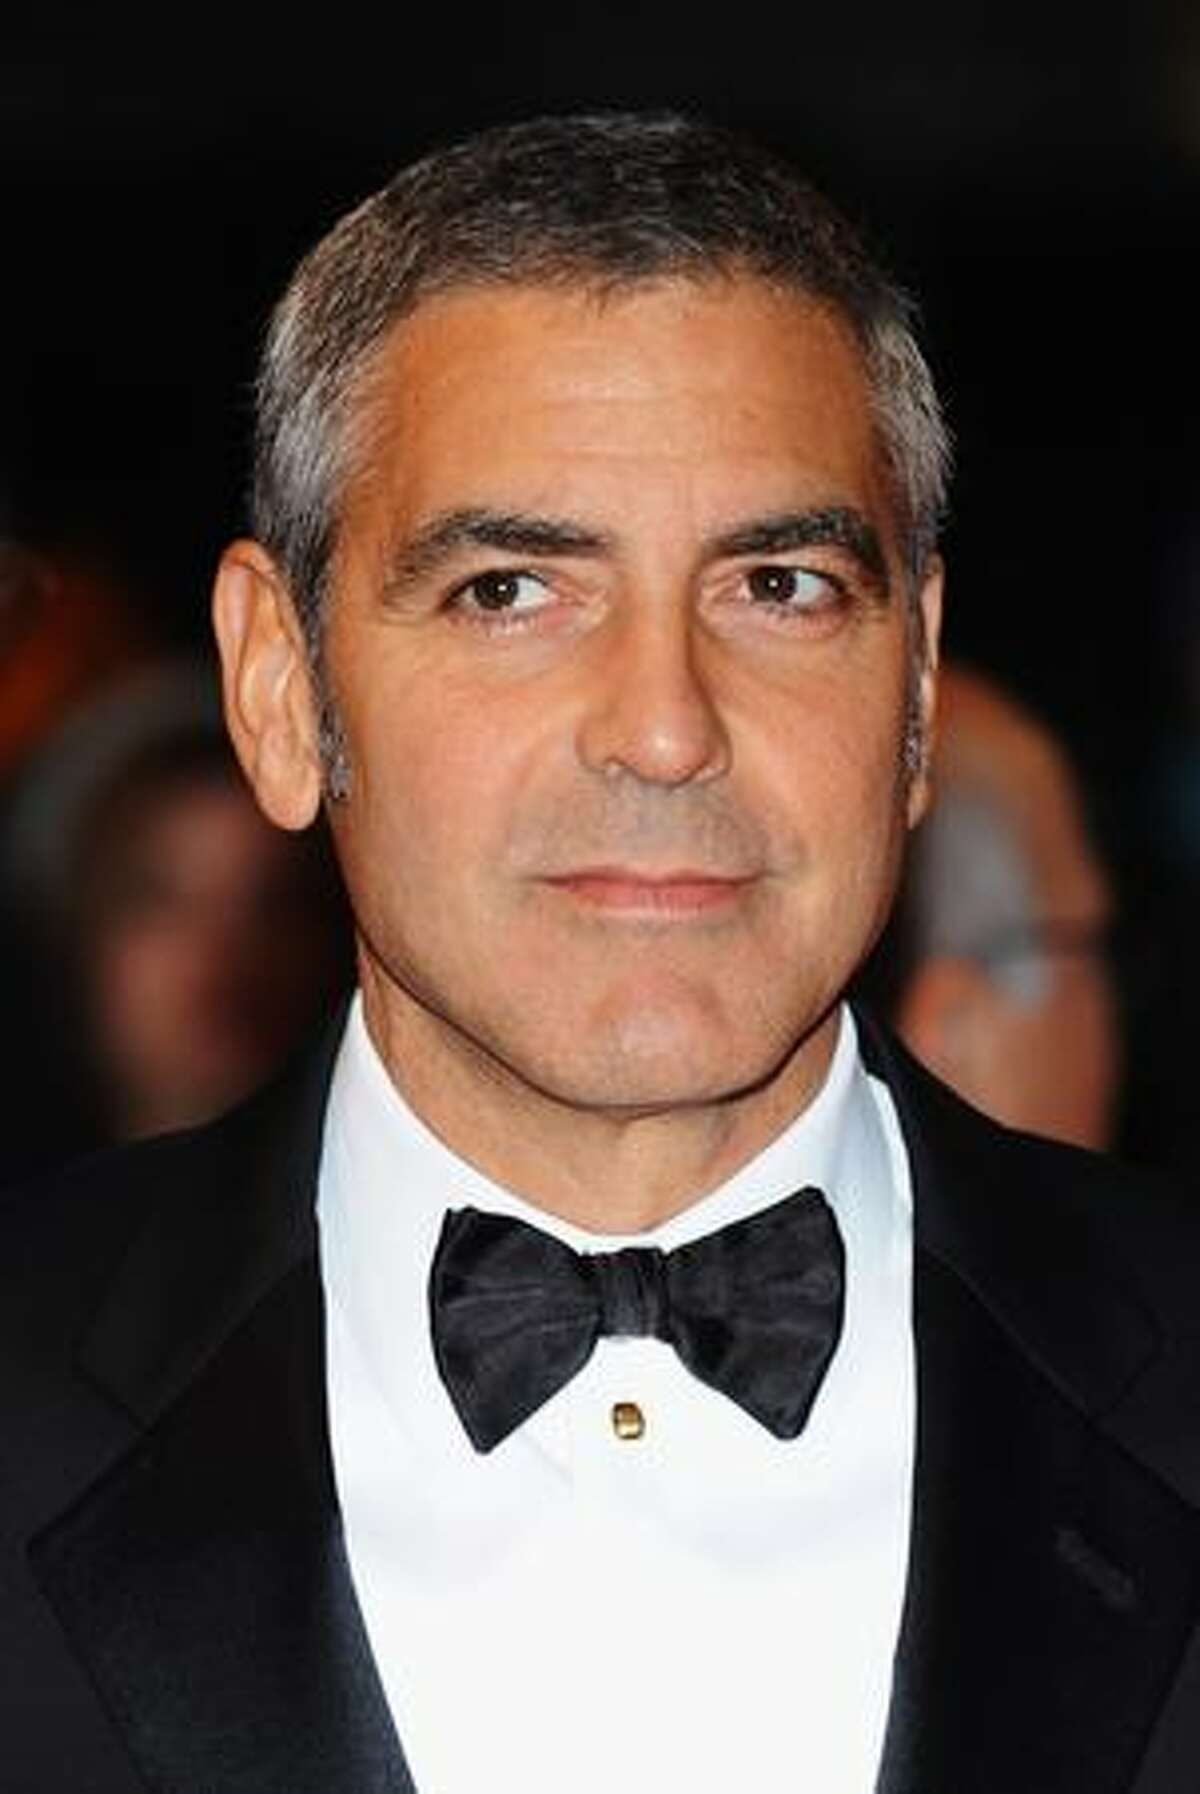 Actor George Clooney attends the world premiere of 'Fantastic Mr. Fox' and the opening gala of the Times BFI London Film Festival at the Odeon Leicester Square in London, England.